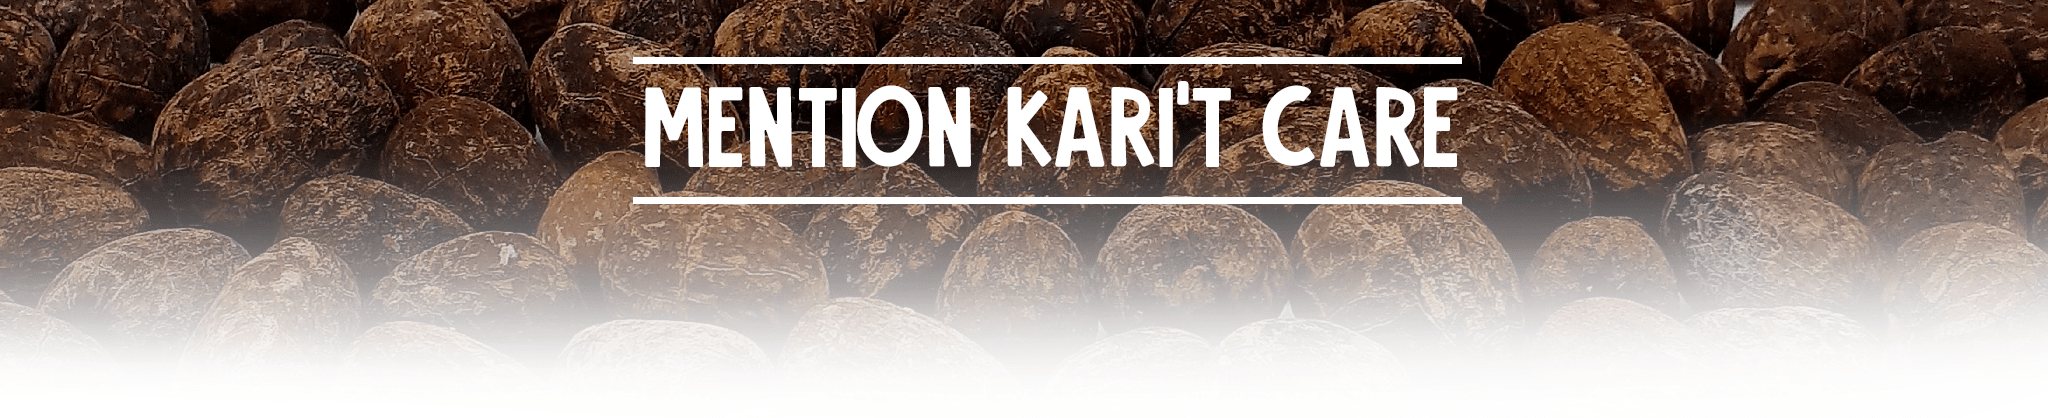 mention-karitcare